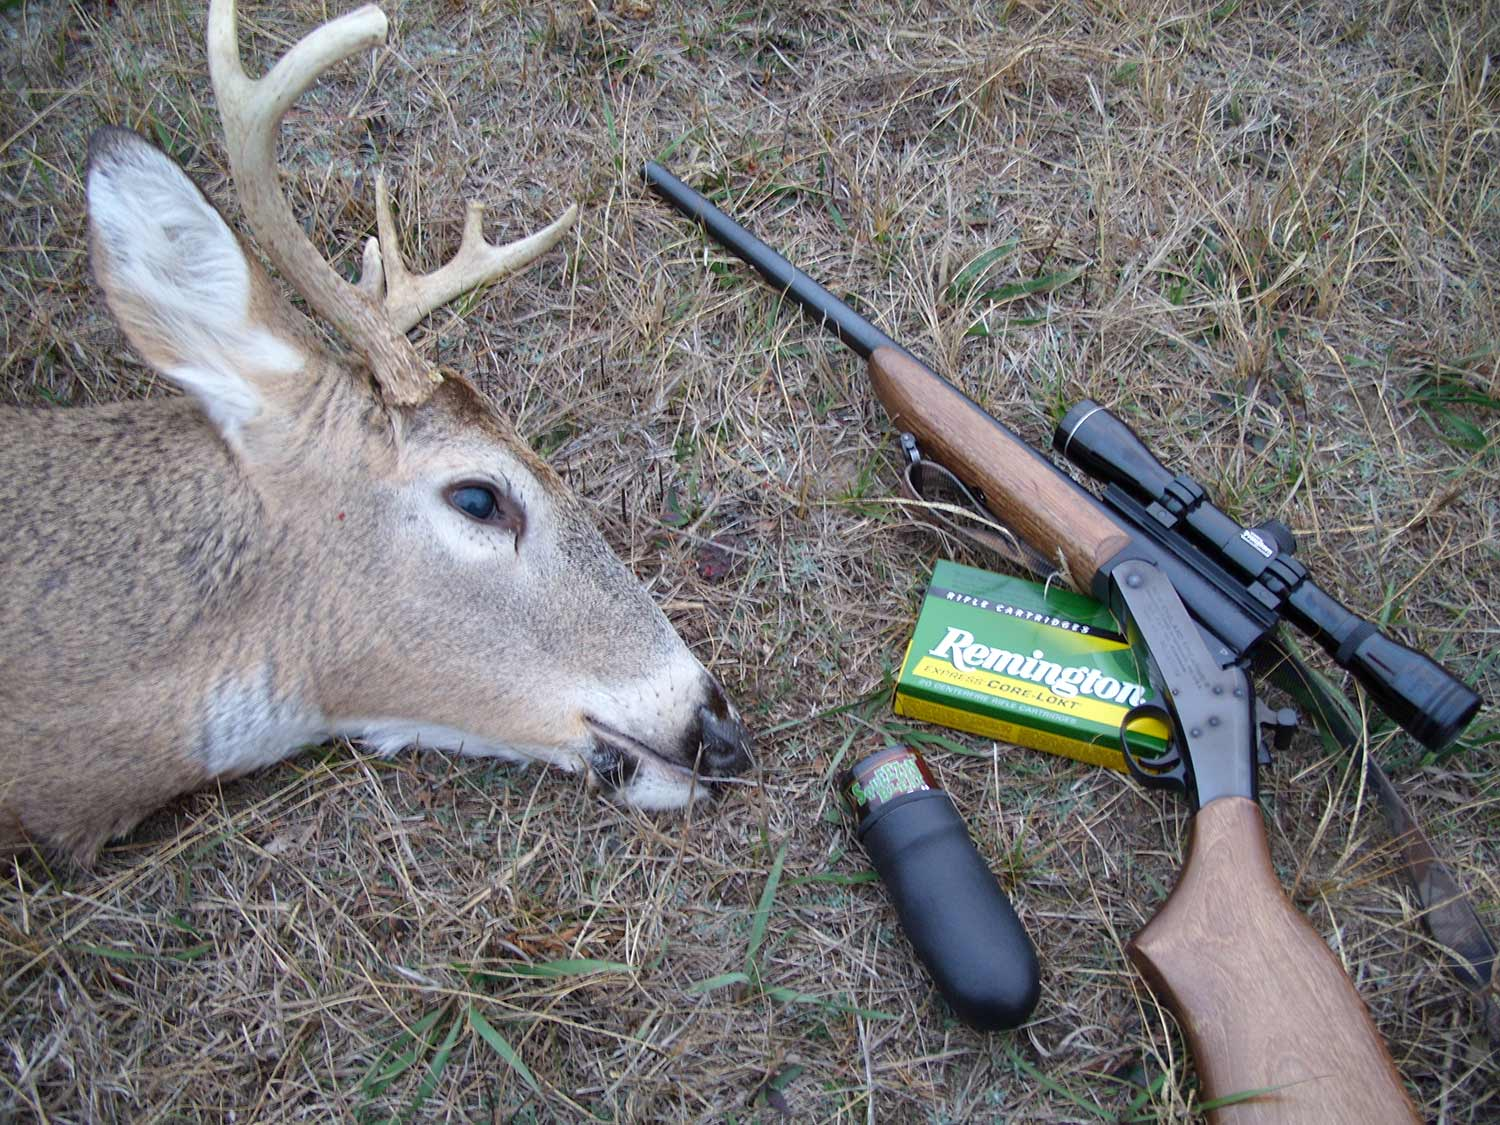 a deer next to a hunting rifle and ammo.